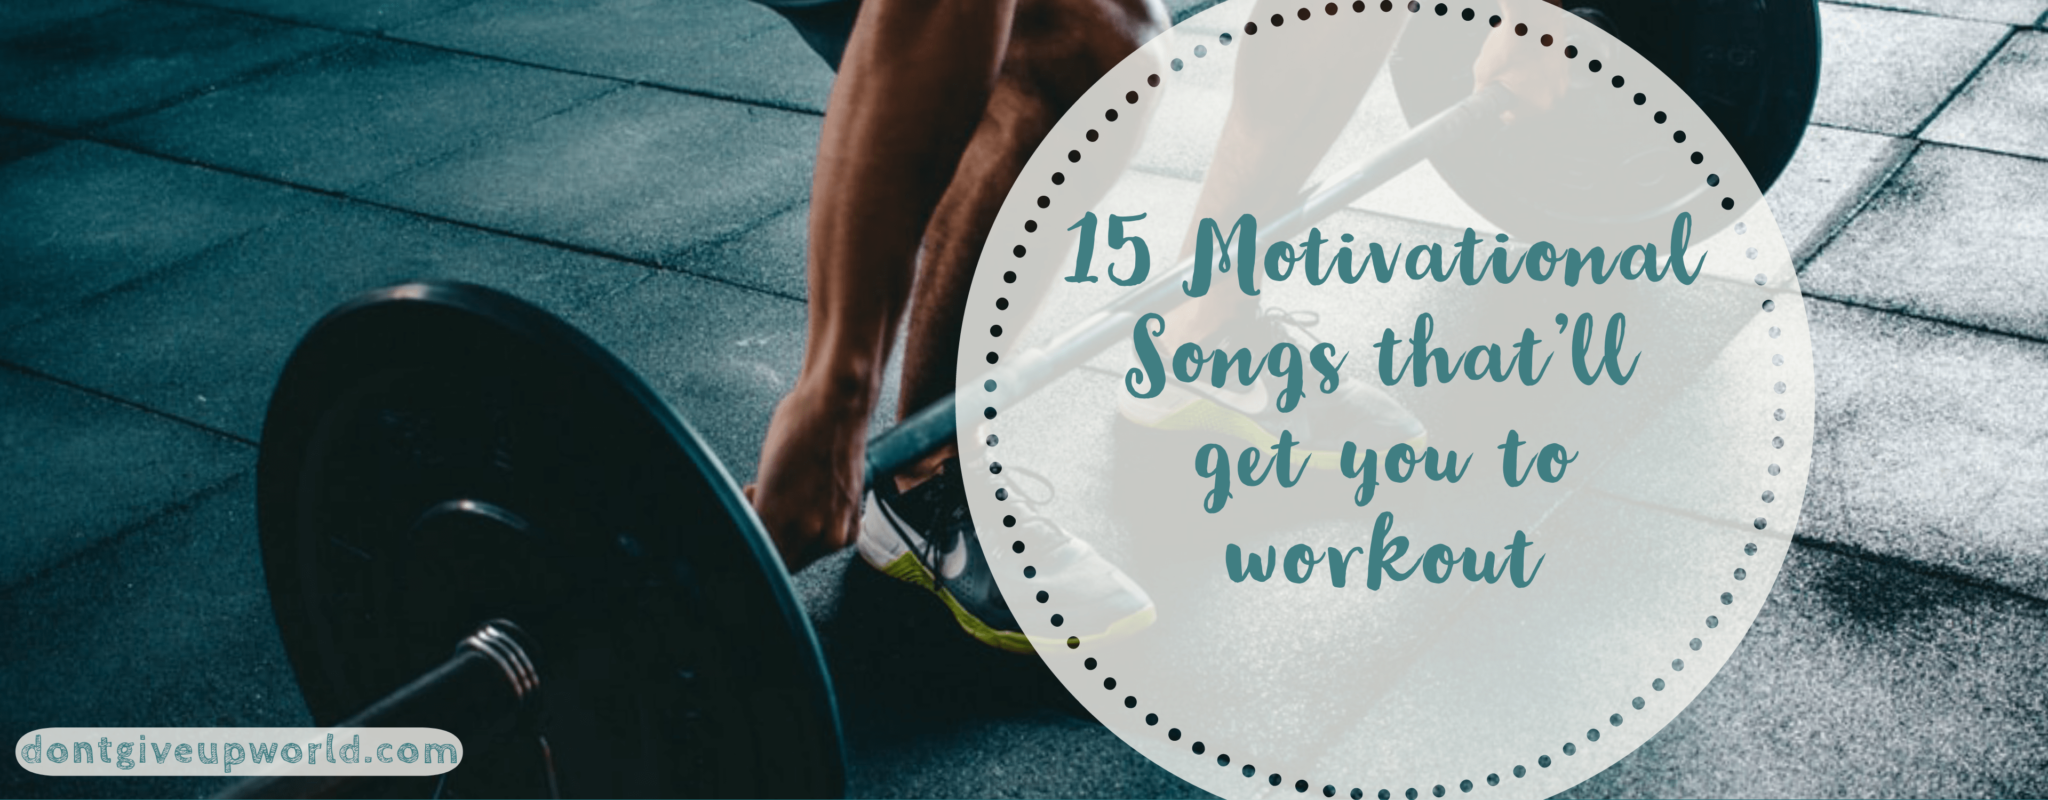 15 Motivational Songs that'll get you to workout